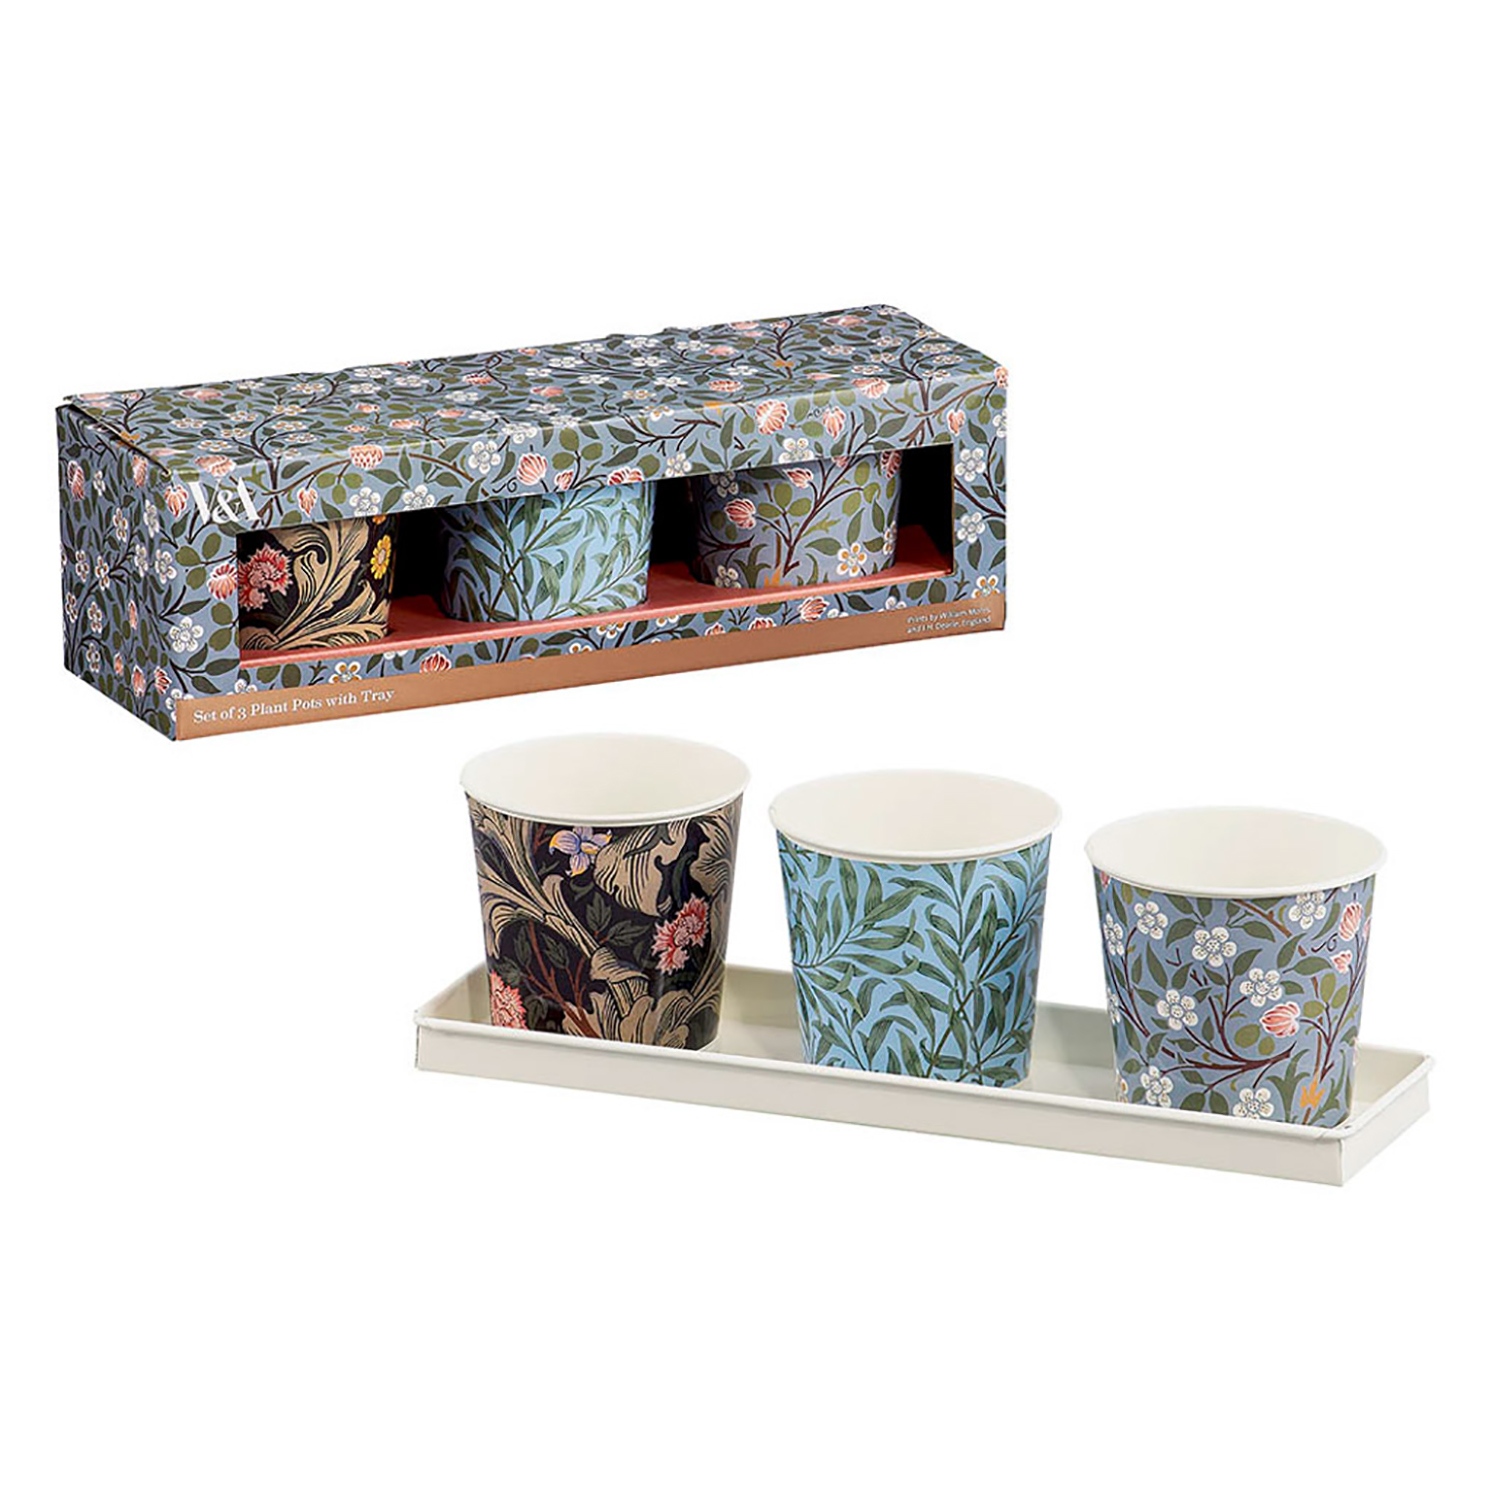 V&A – Set of 3 Plant Pots in Tray in Presentation Gift Box